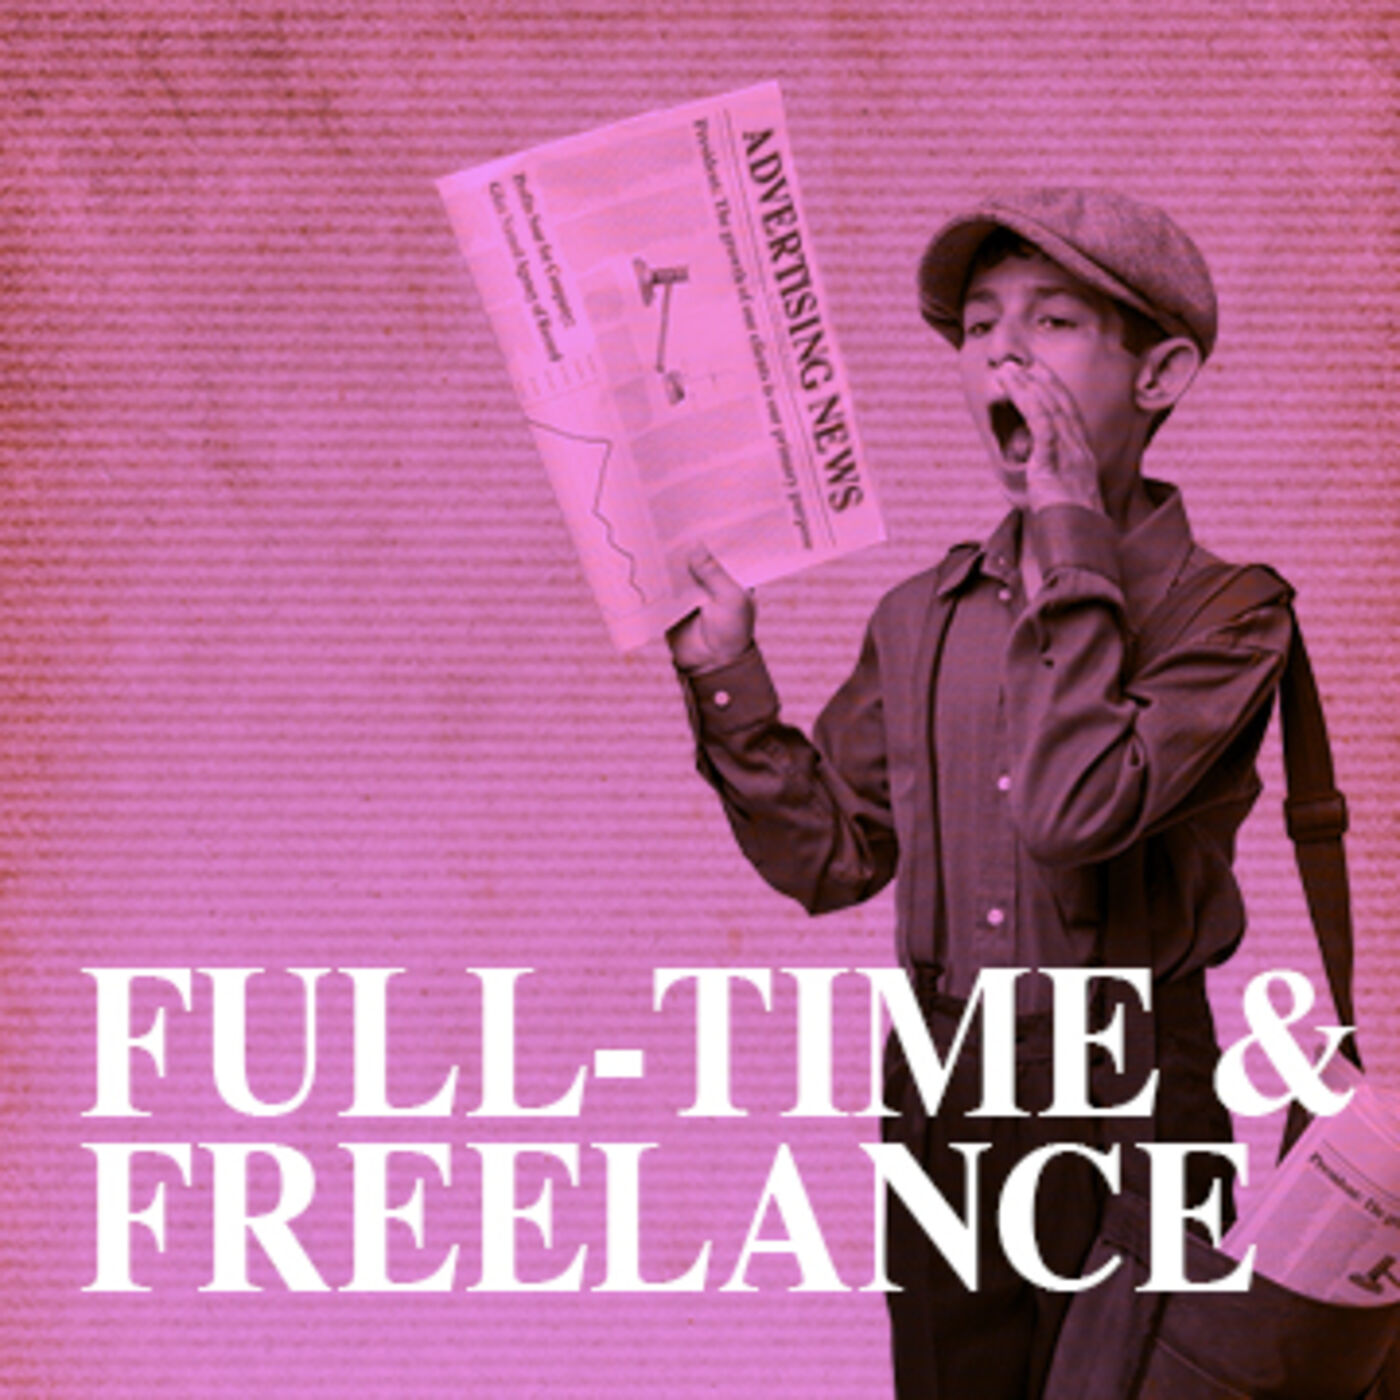 Should Full-Time Employees Freelance? - The Glint Standard